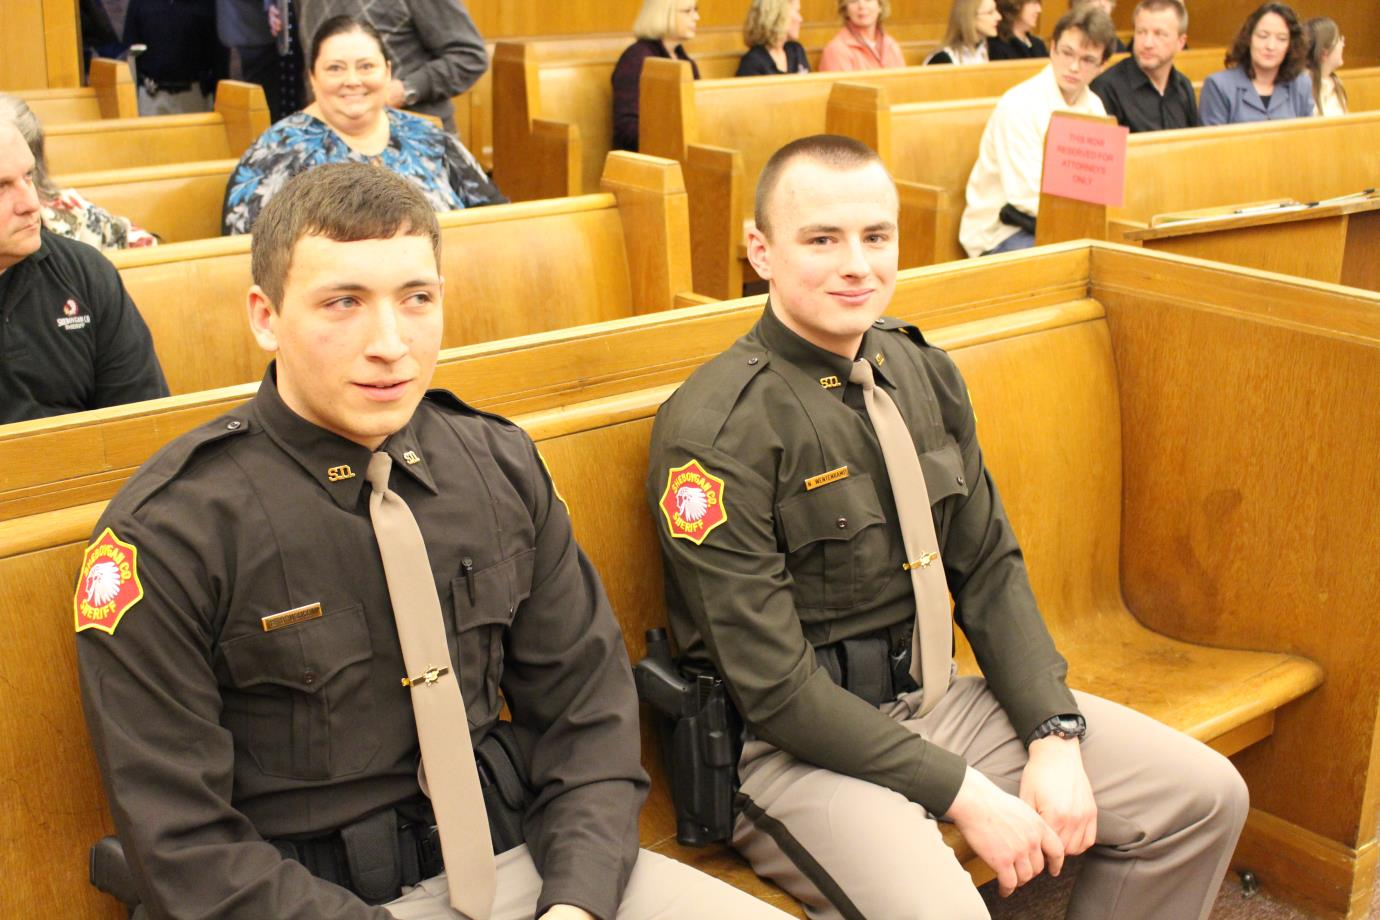 officers seated at the front of the courtroom